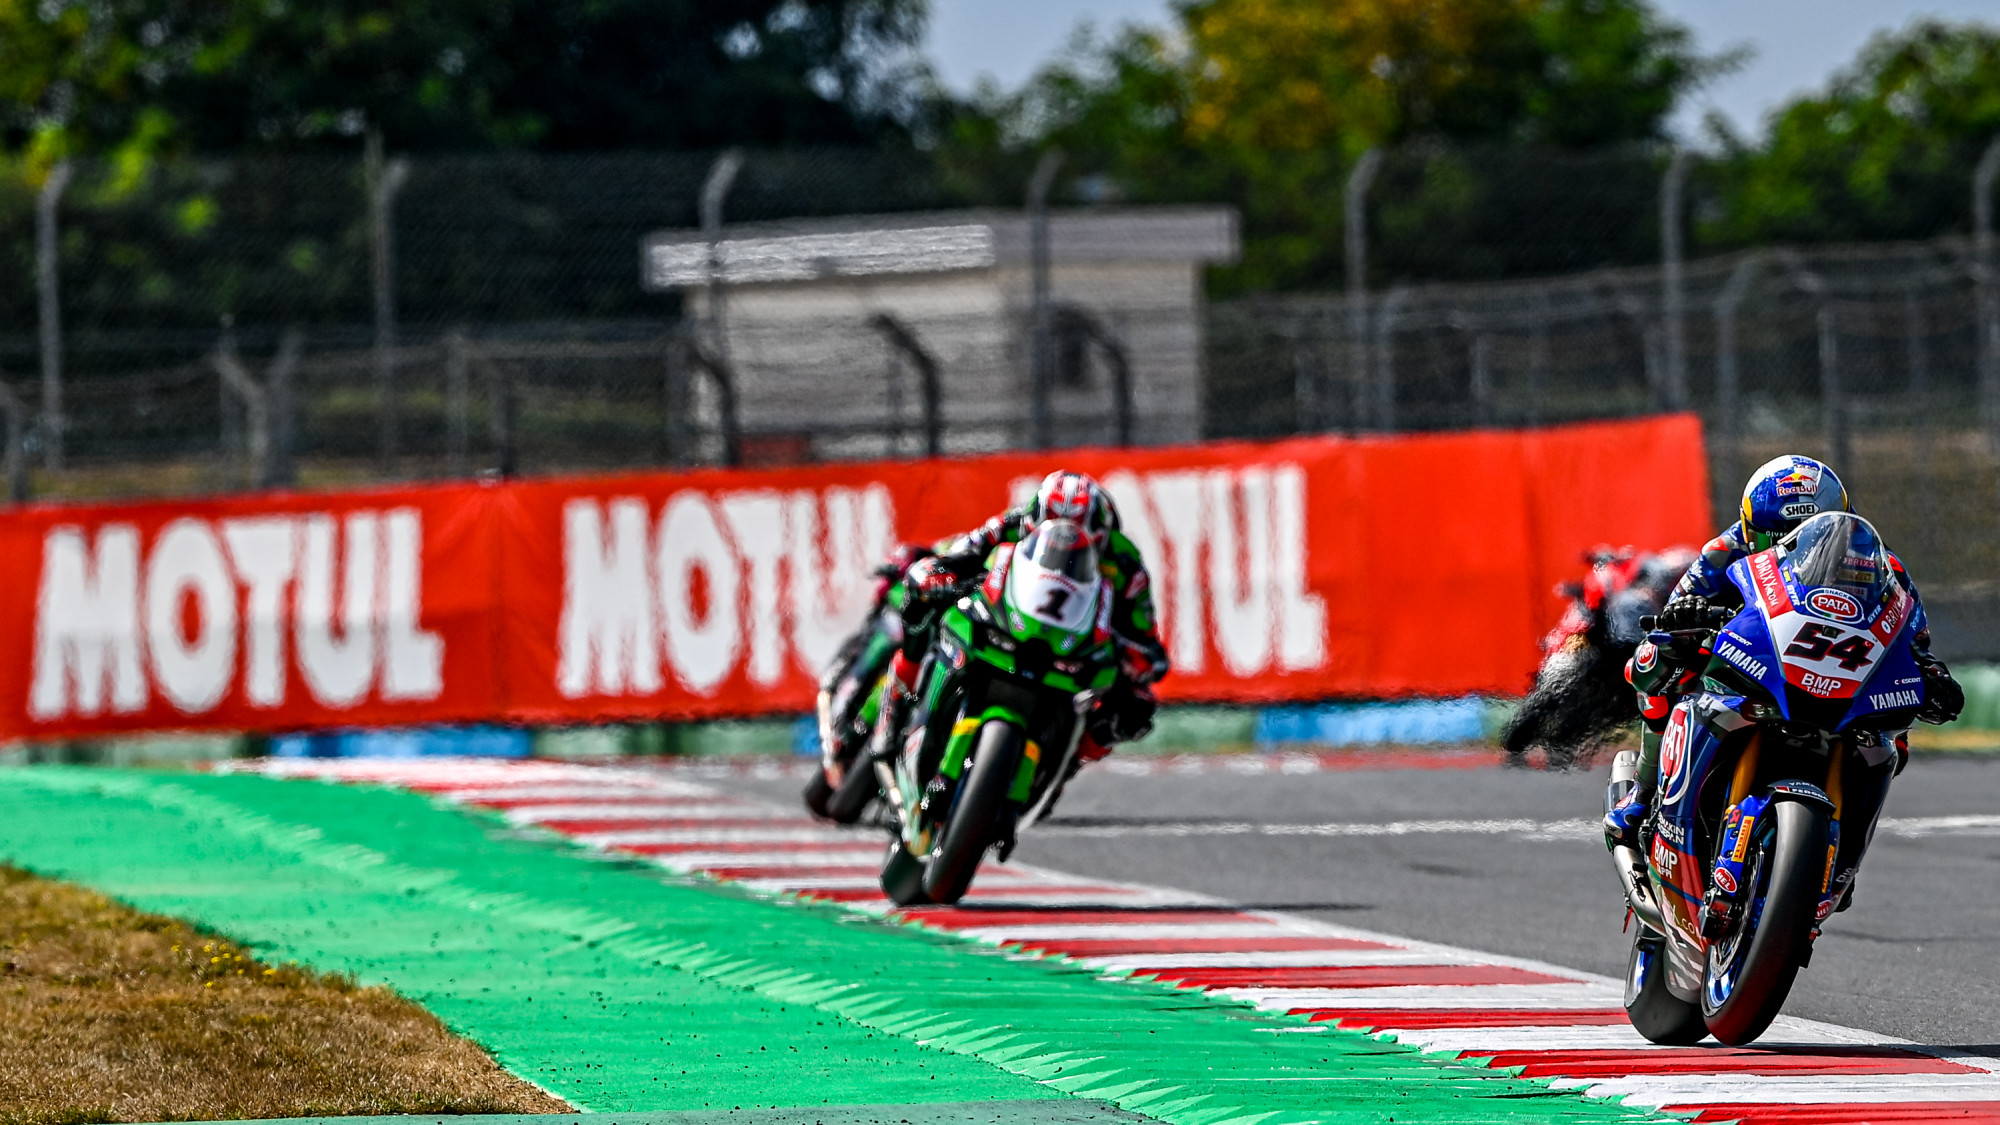 WorldSBK partners with Eclat Media Group across Asia